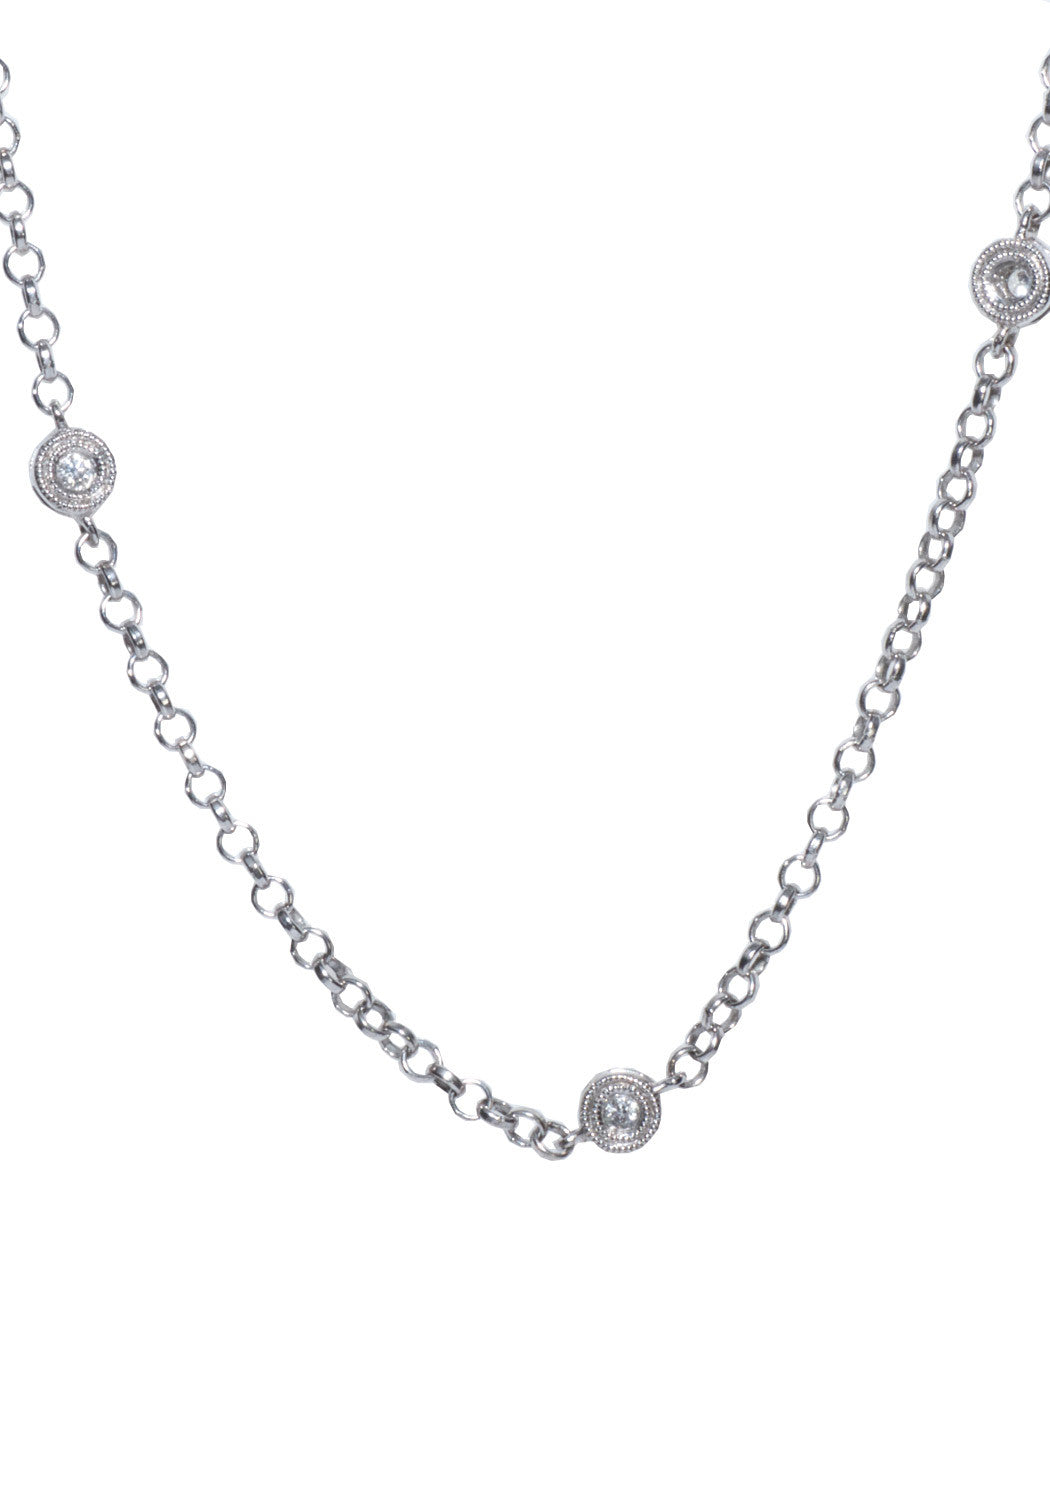 .41ctw Diamond Chain W/ Toggle